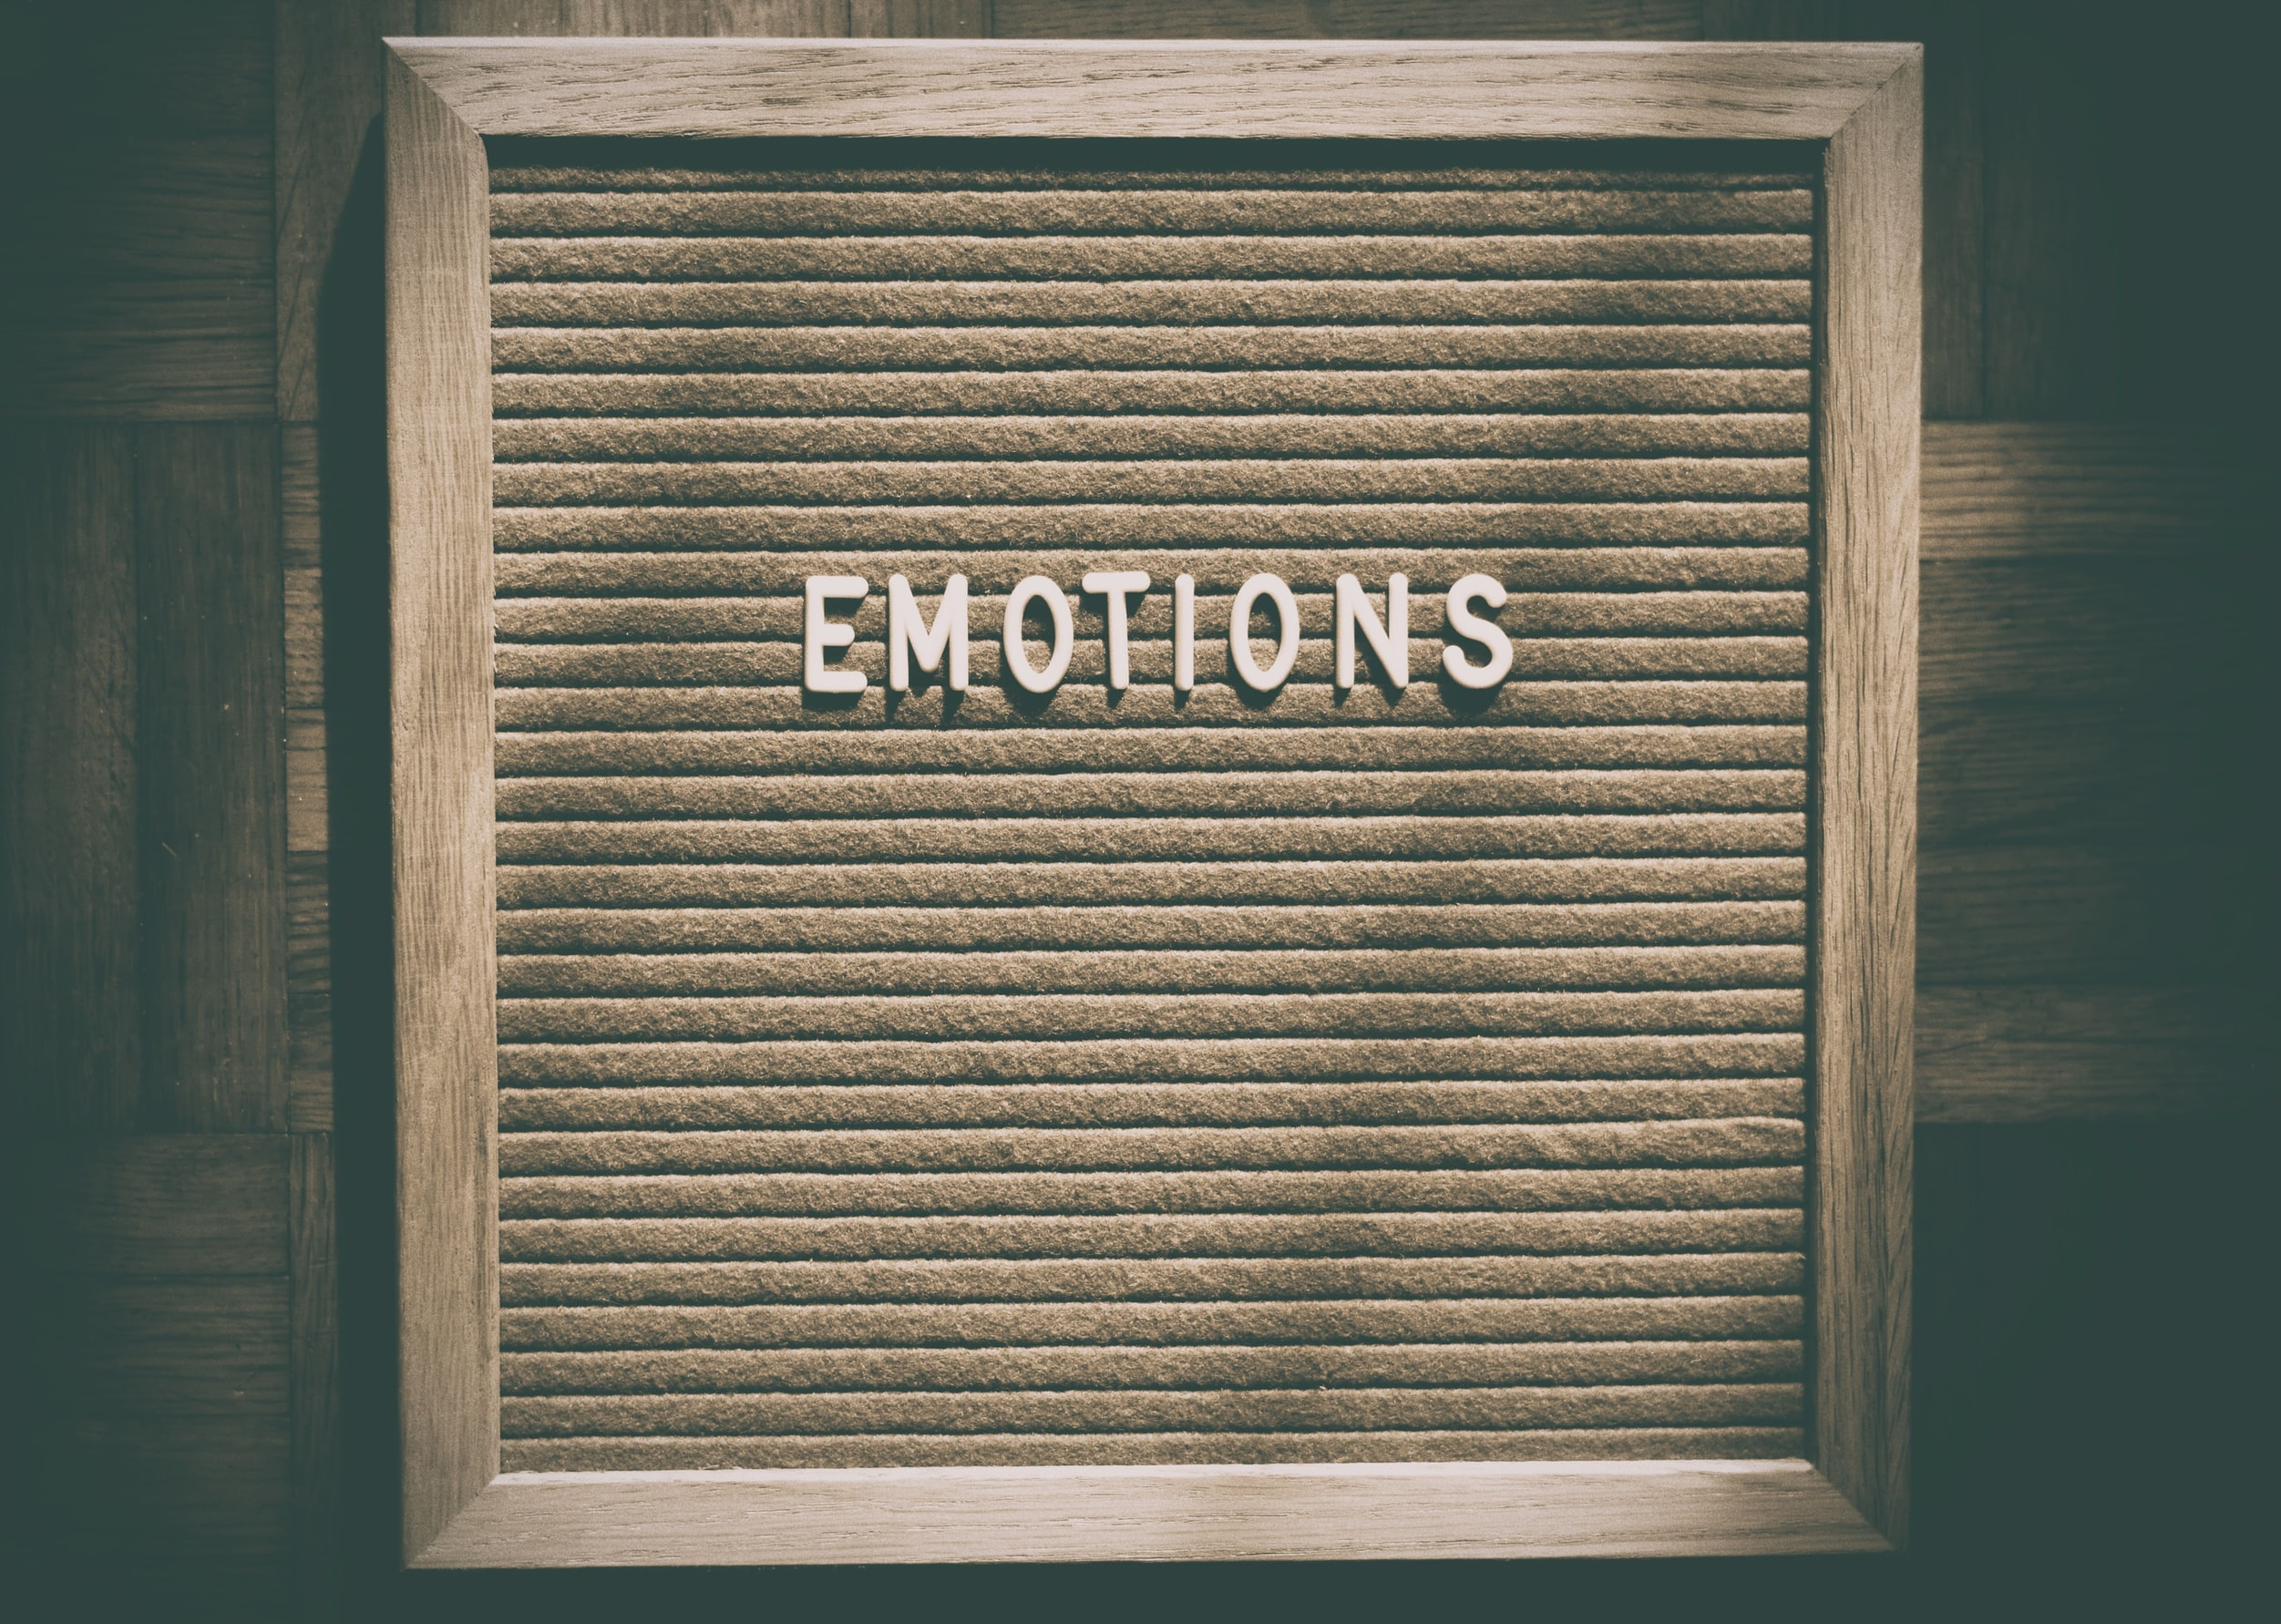 If you want to know how to persuade anyone, use emotional language.